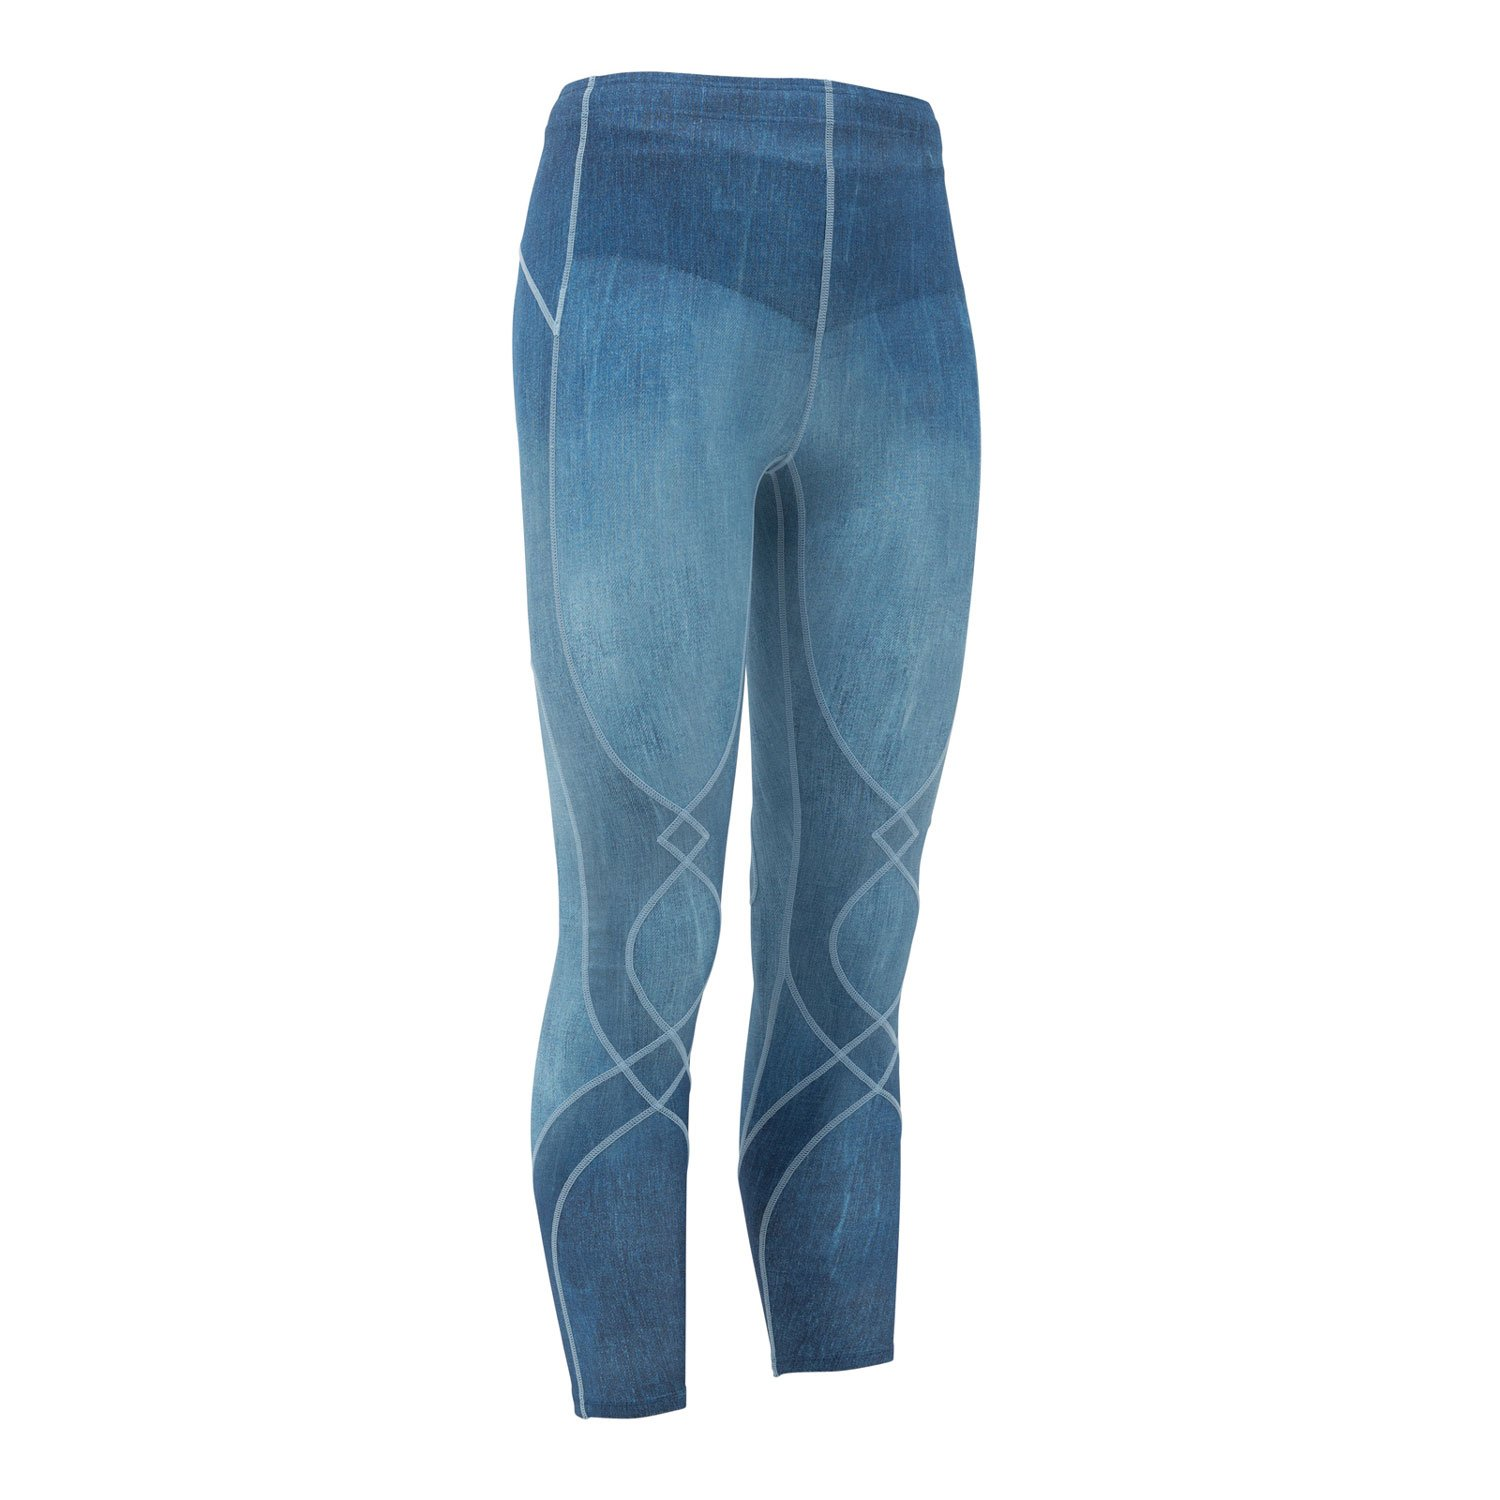 CW-X Women's Stabilyx Joint Support Compression Tight, Denim Blue, X-Small by CW-X (Image #1)